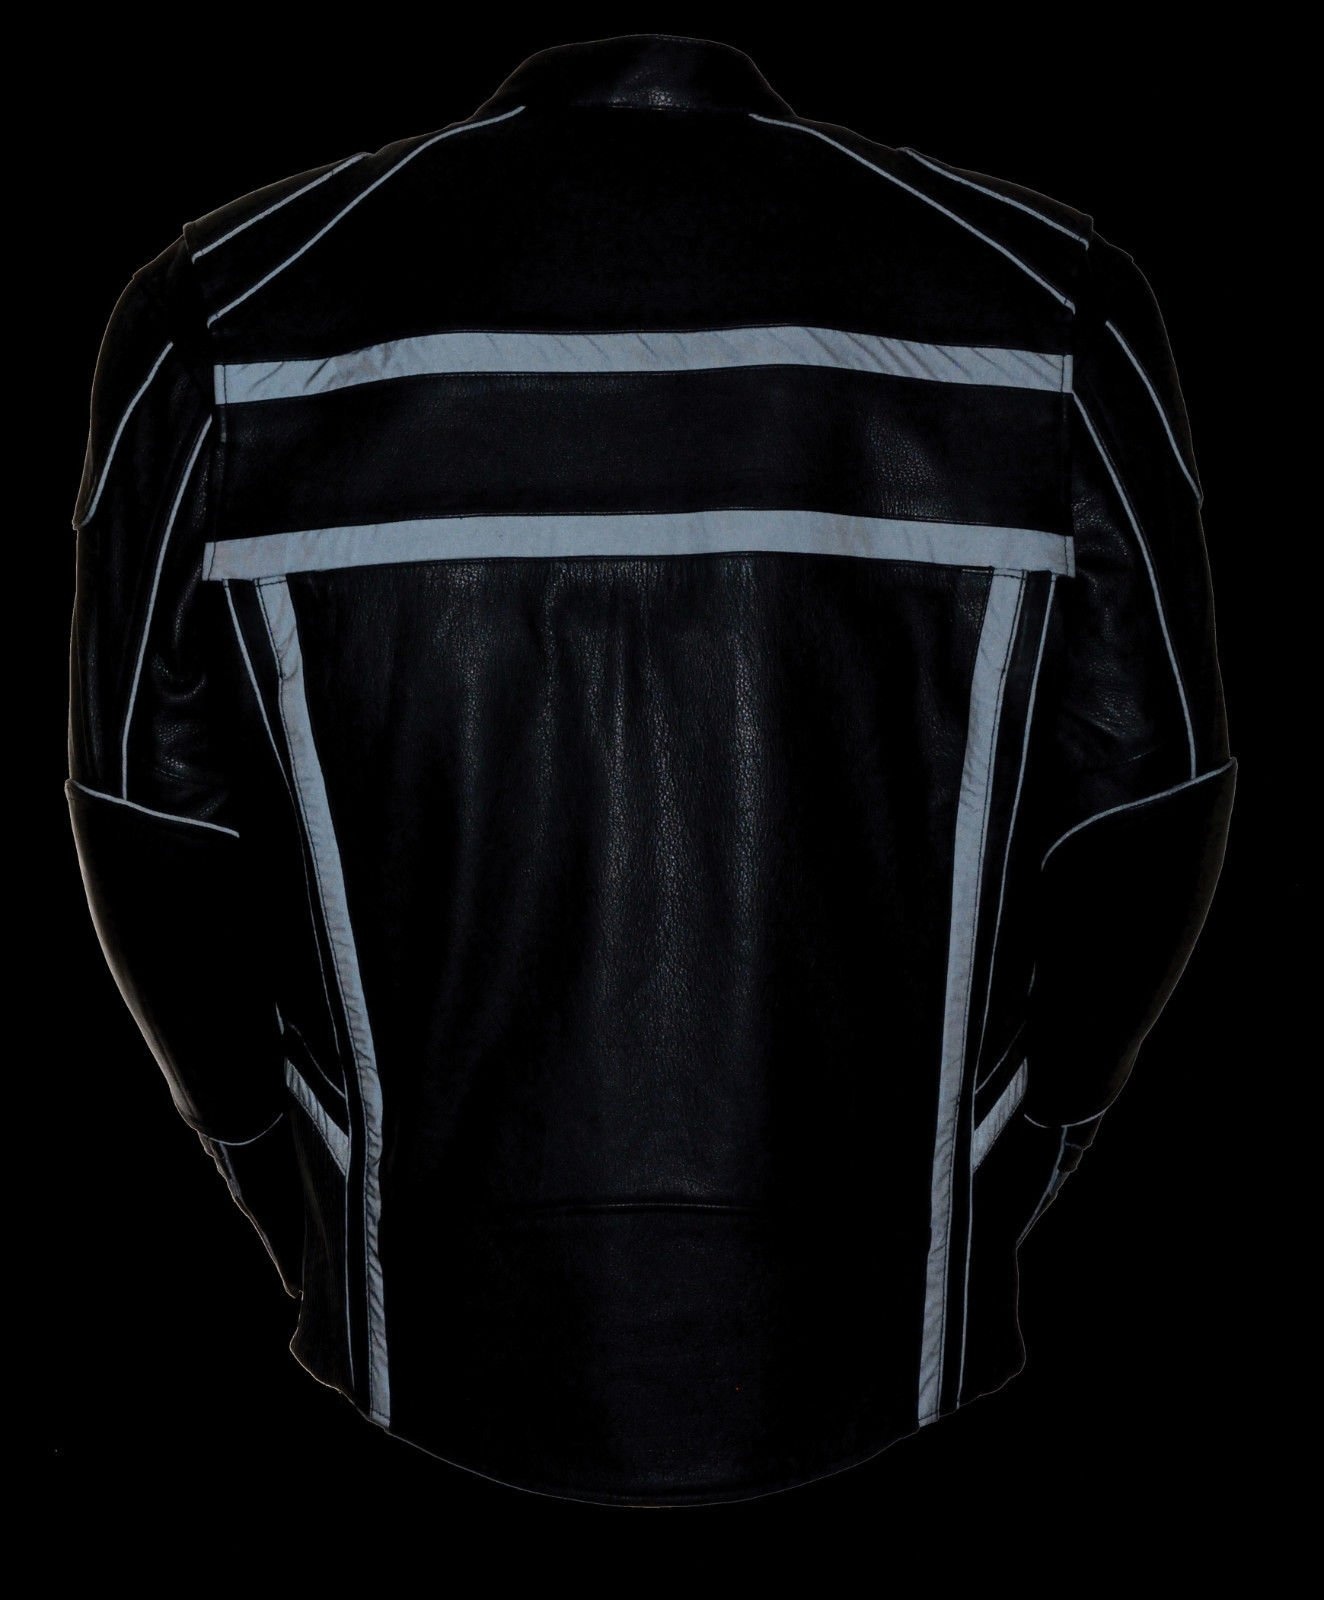 MEN'S MOTORCYCLE REFLECTIVE STRIPE SCOOTER COW LEATHER VENTS JACKET SIDE STRETCH (2XL Regular) by Milwaukee (Image #5)